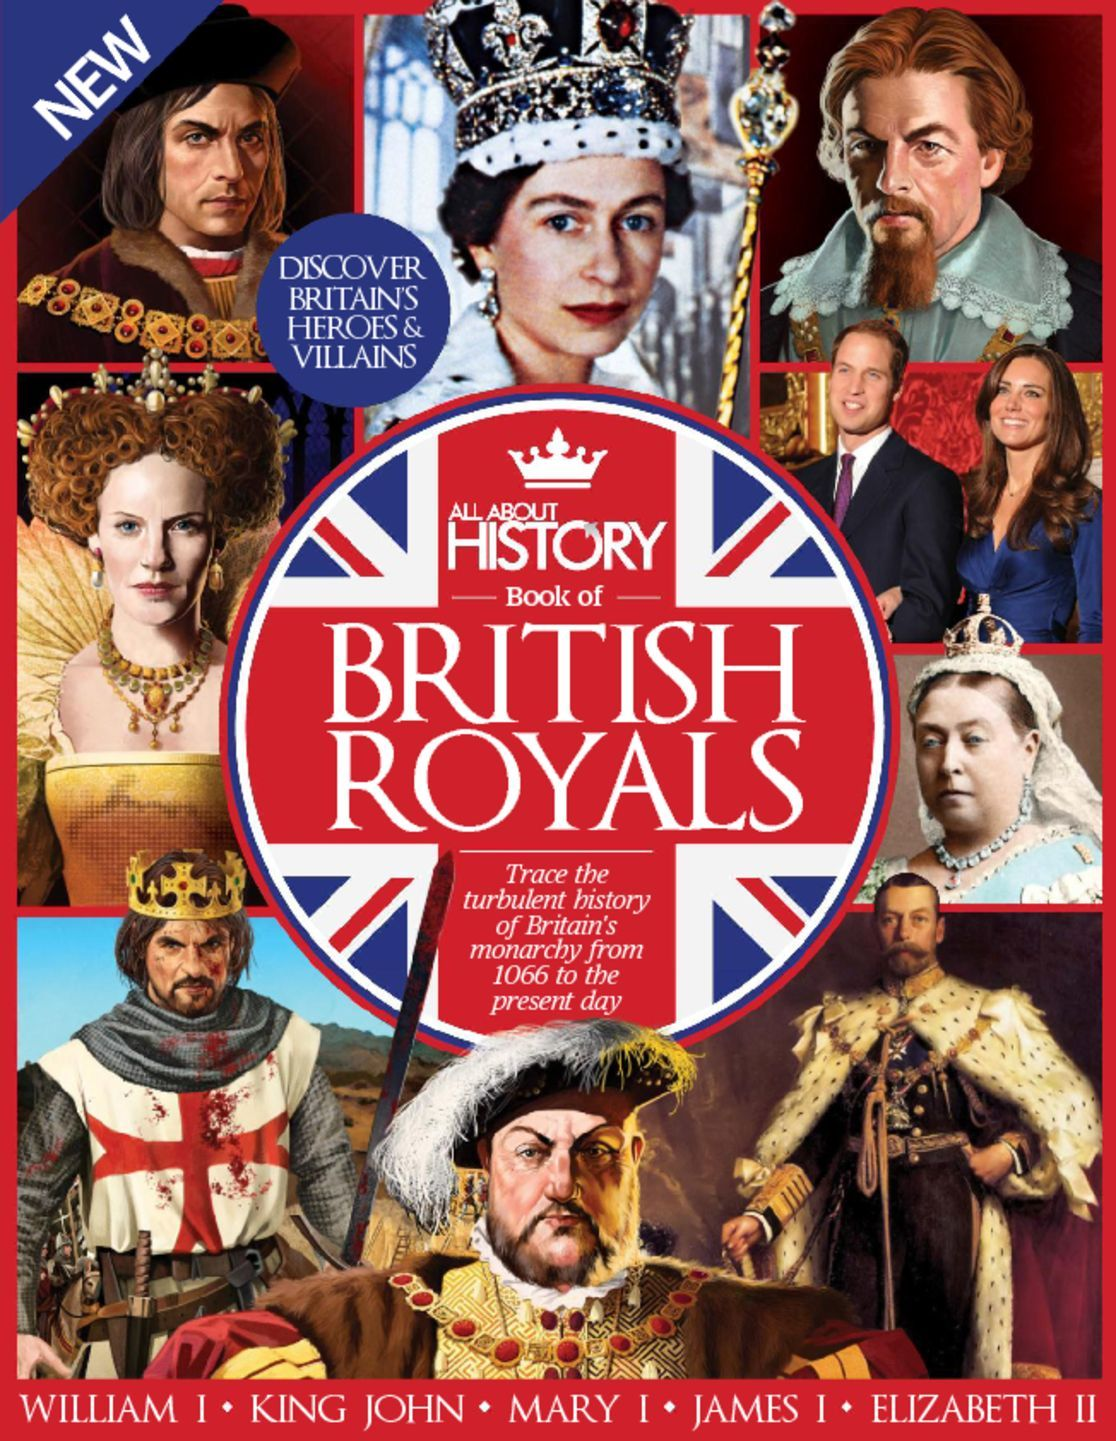 All About History Book of British Royals Digital